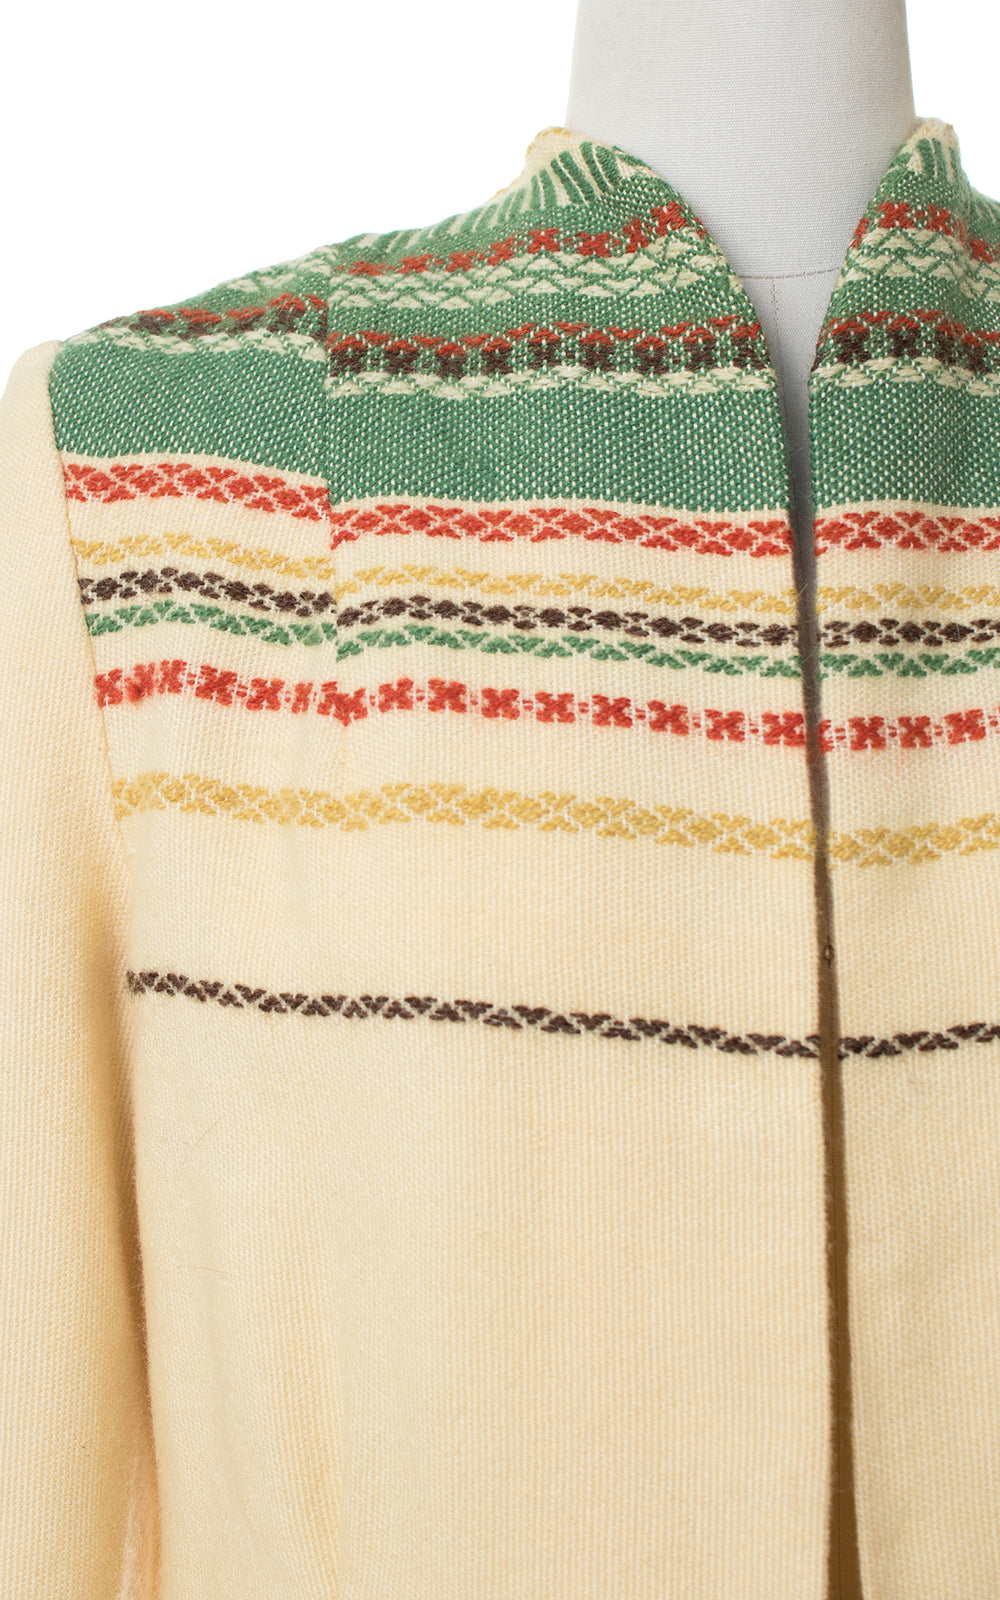 SOLD || 1960s Scandinavian Woven Wool Jacket | medium